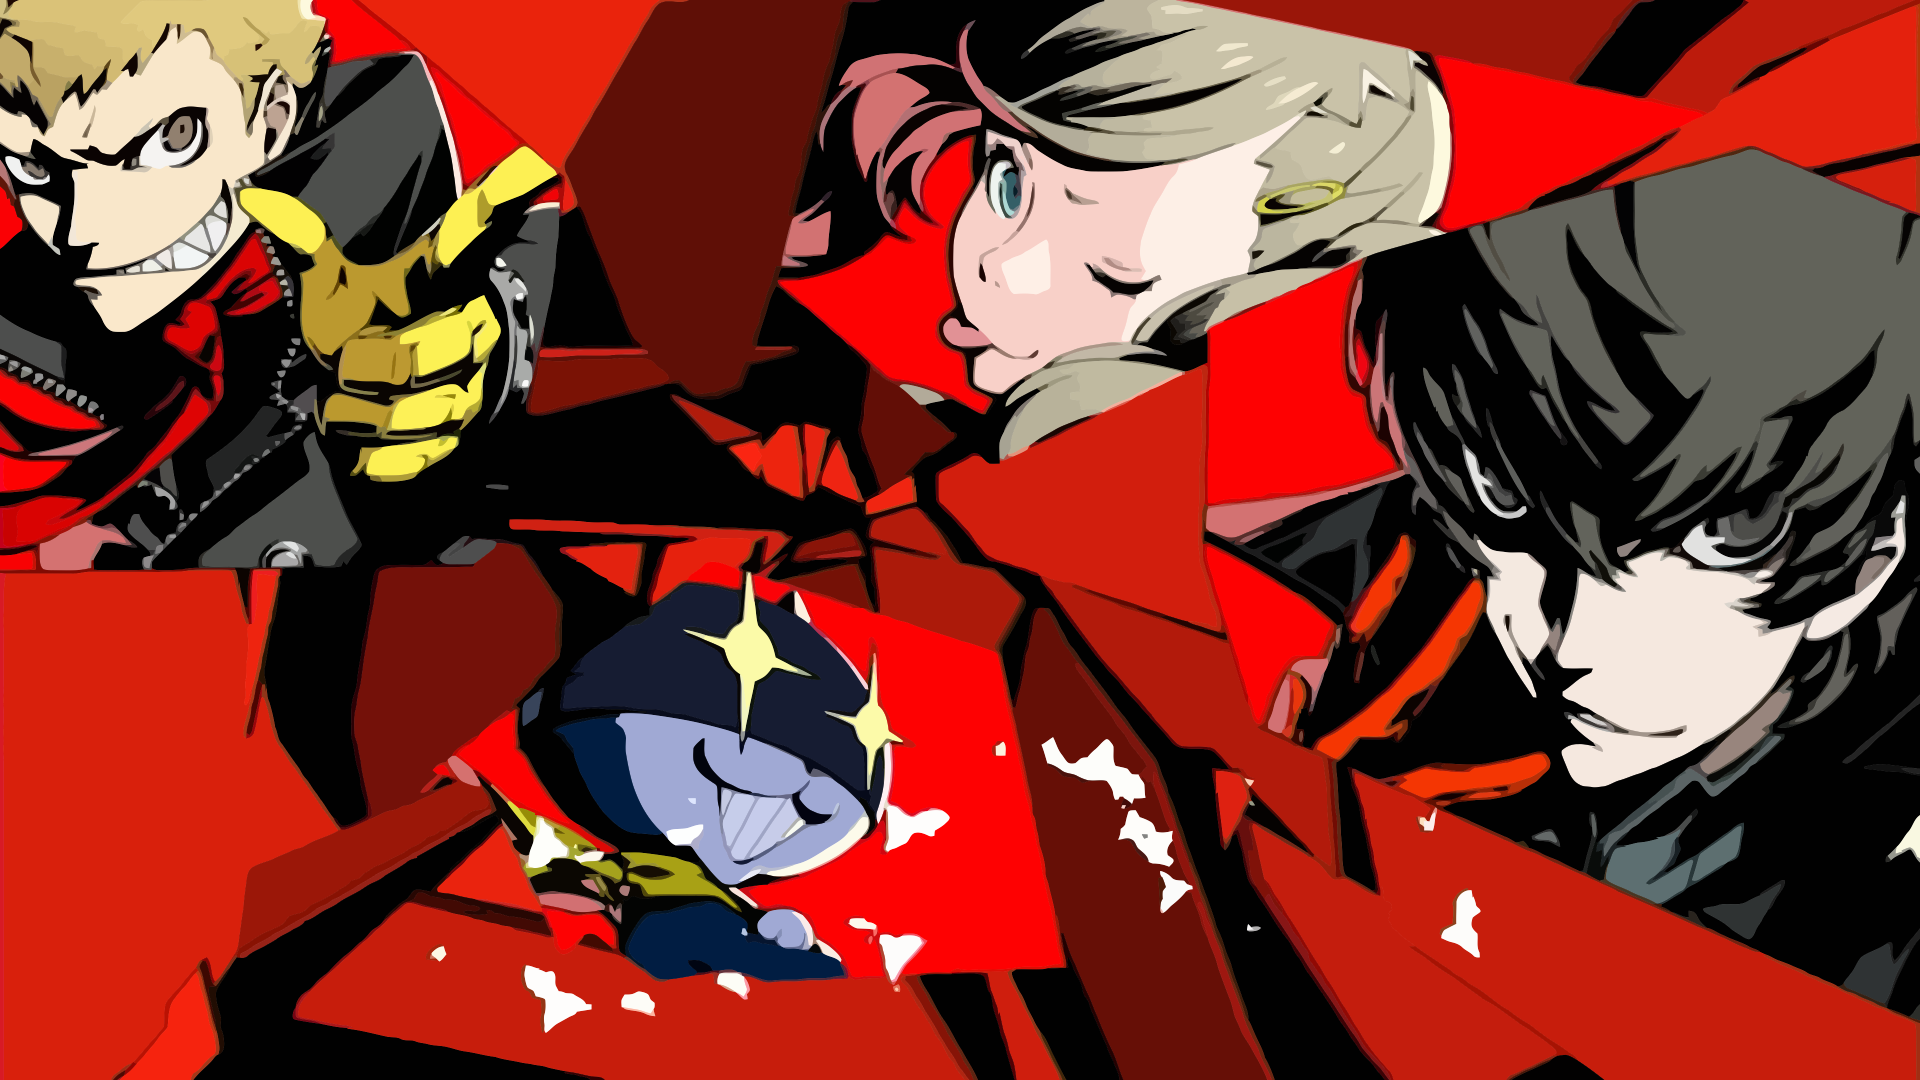 Persona 5 Persona Series Video Games Anime Anime Girls Anime Boys Collage Protagonist Persona 5 Ann Takamaki Morgana 1920x1080 Wallpaper Wallhaven Cc